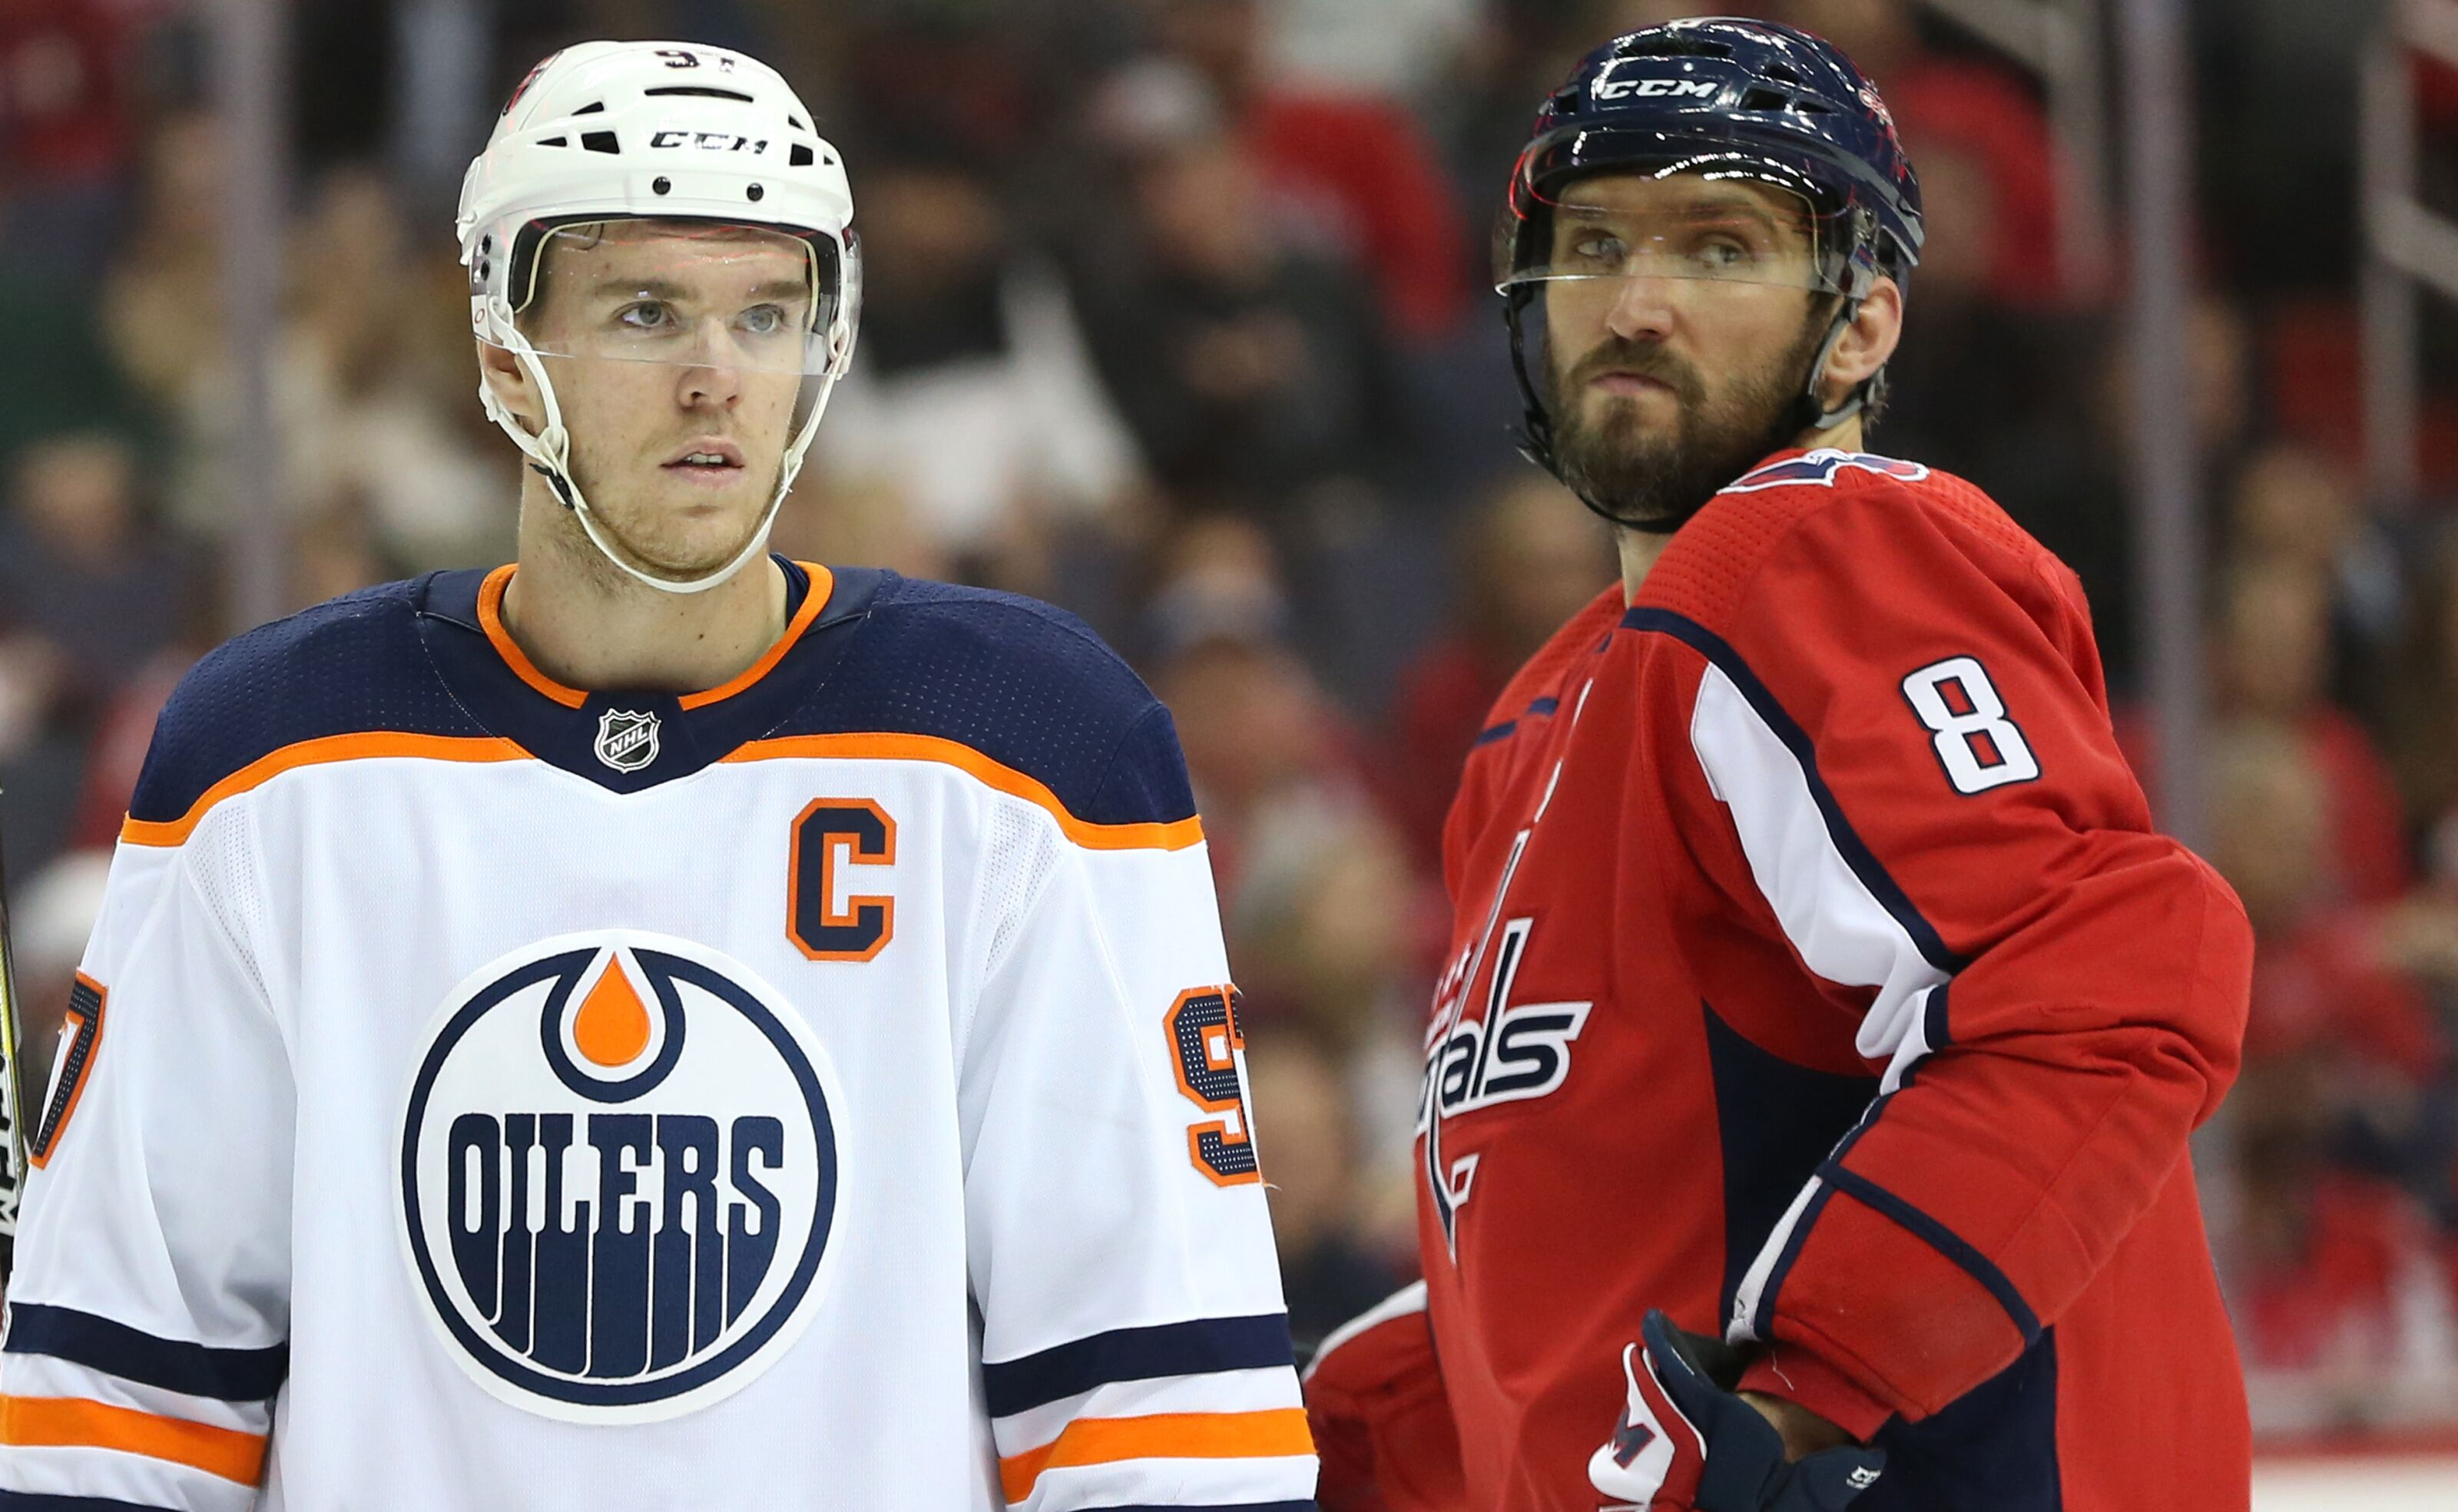 Edmonton Oilers: What Alex Ovechkin and Jarome Iginla can teach about winning